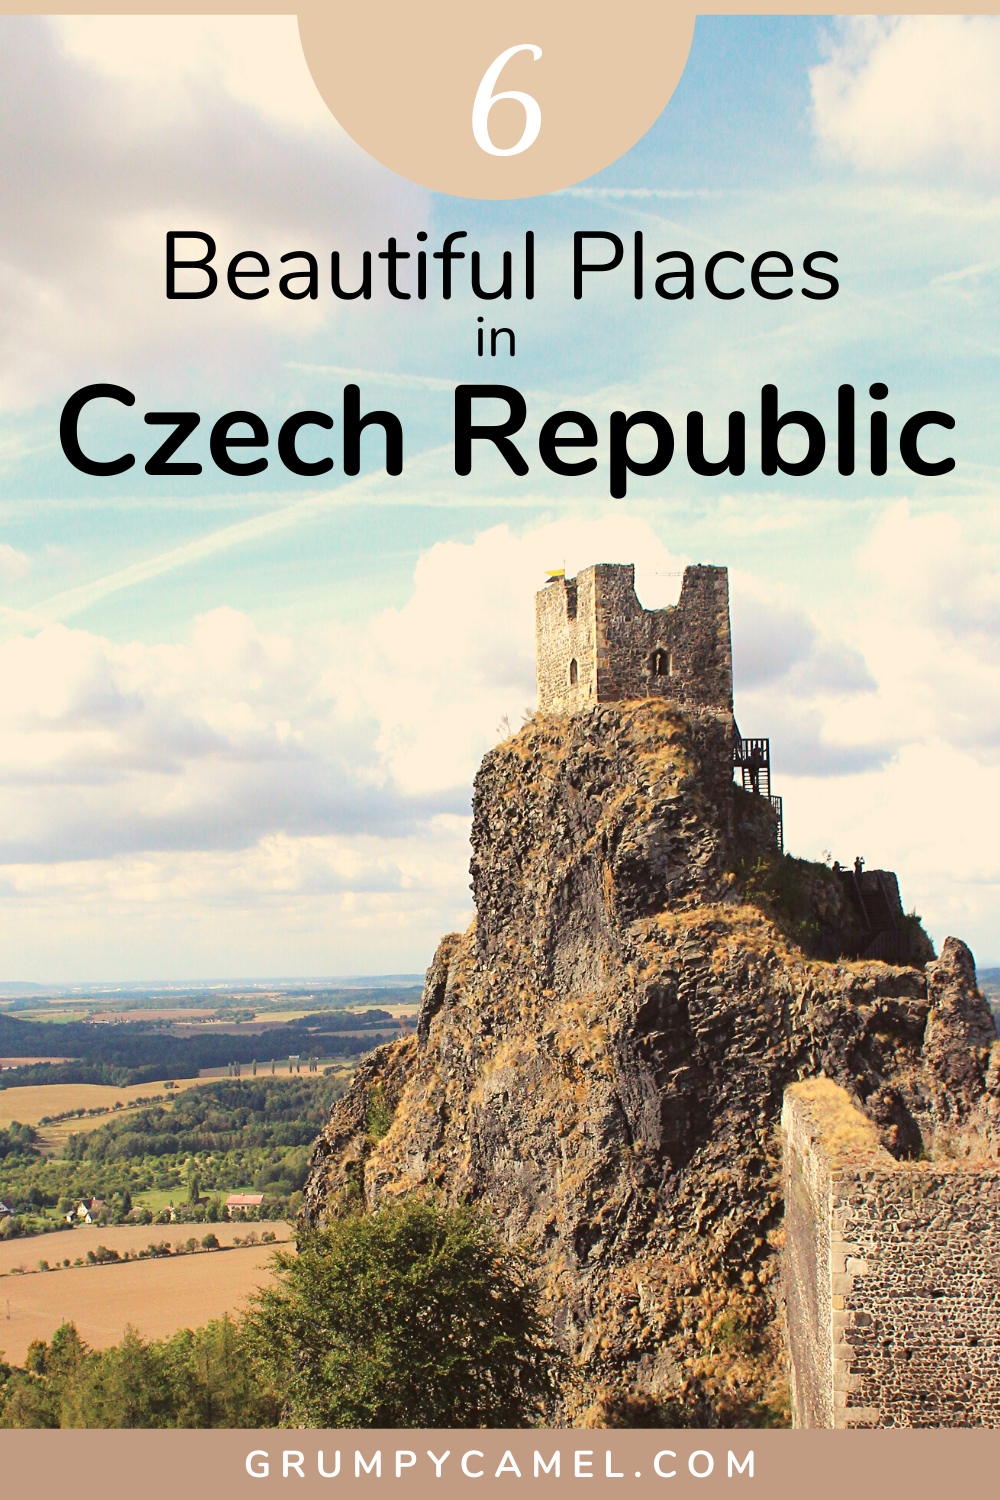 Looking for beautiful places in Czech Republic to visit besides Prague? Check out my top suggestions, including the fairytale-like town of Cesky Krumlov and the colourful spa town of Karlovy Vary.  #Europe #EuropeTravel #CzechRepublic.